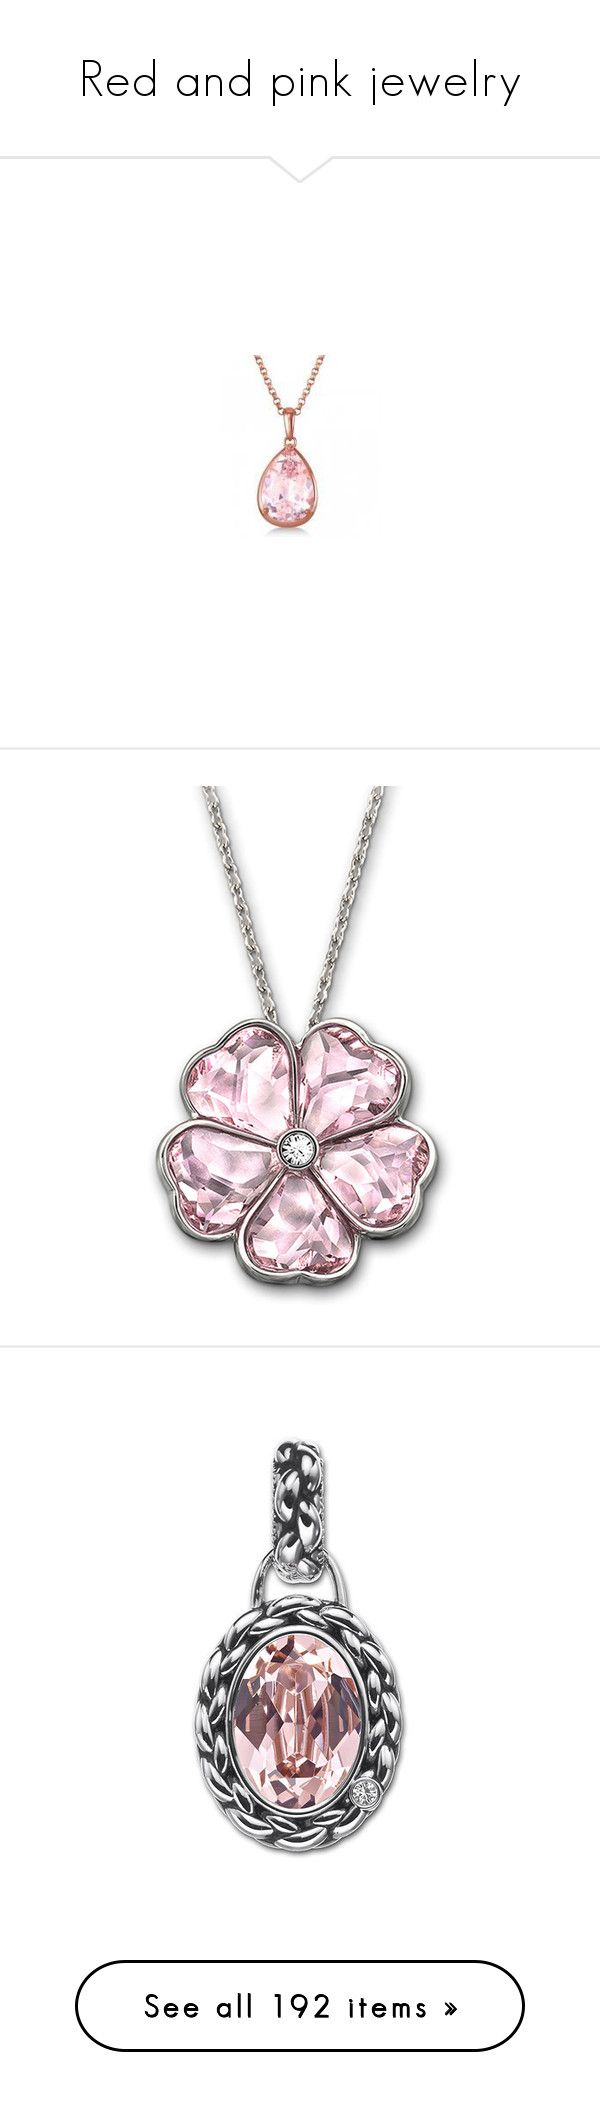 """Red and pink jewelry"" by domino-80 ❤ liked on Polyvore featuring jewelry, necklaces, chain pendants, chain necklaces, rose gold pendant necklace, rose gold pendant, rose gold necklace pendant, accessories, pink and pink crystal necklace"